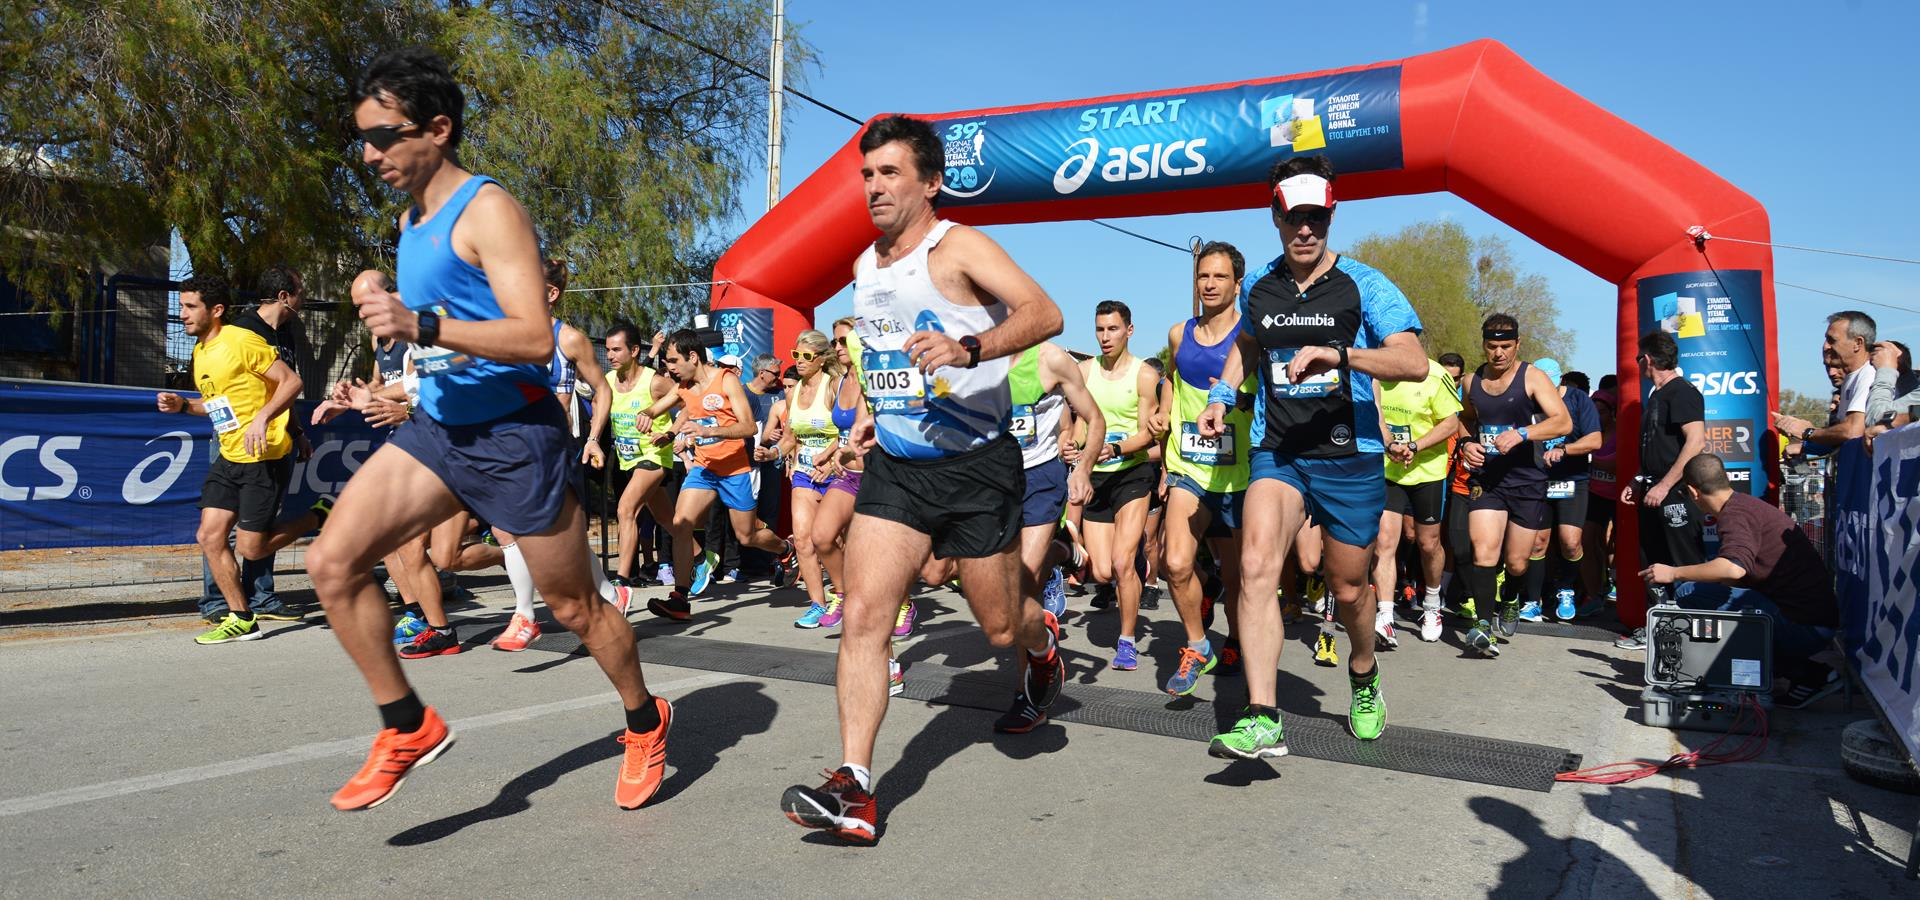 41th Athens Health Run 21.1 km